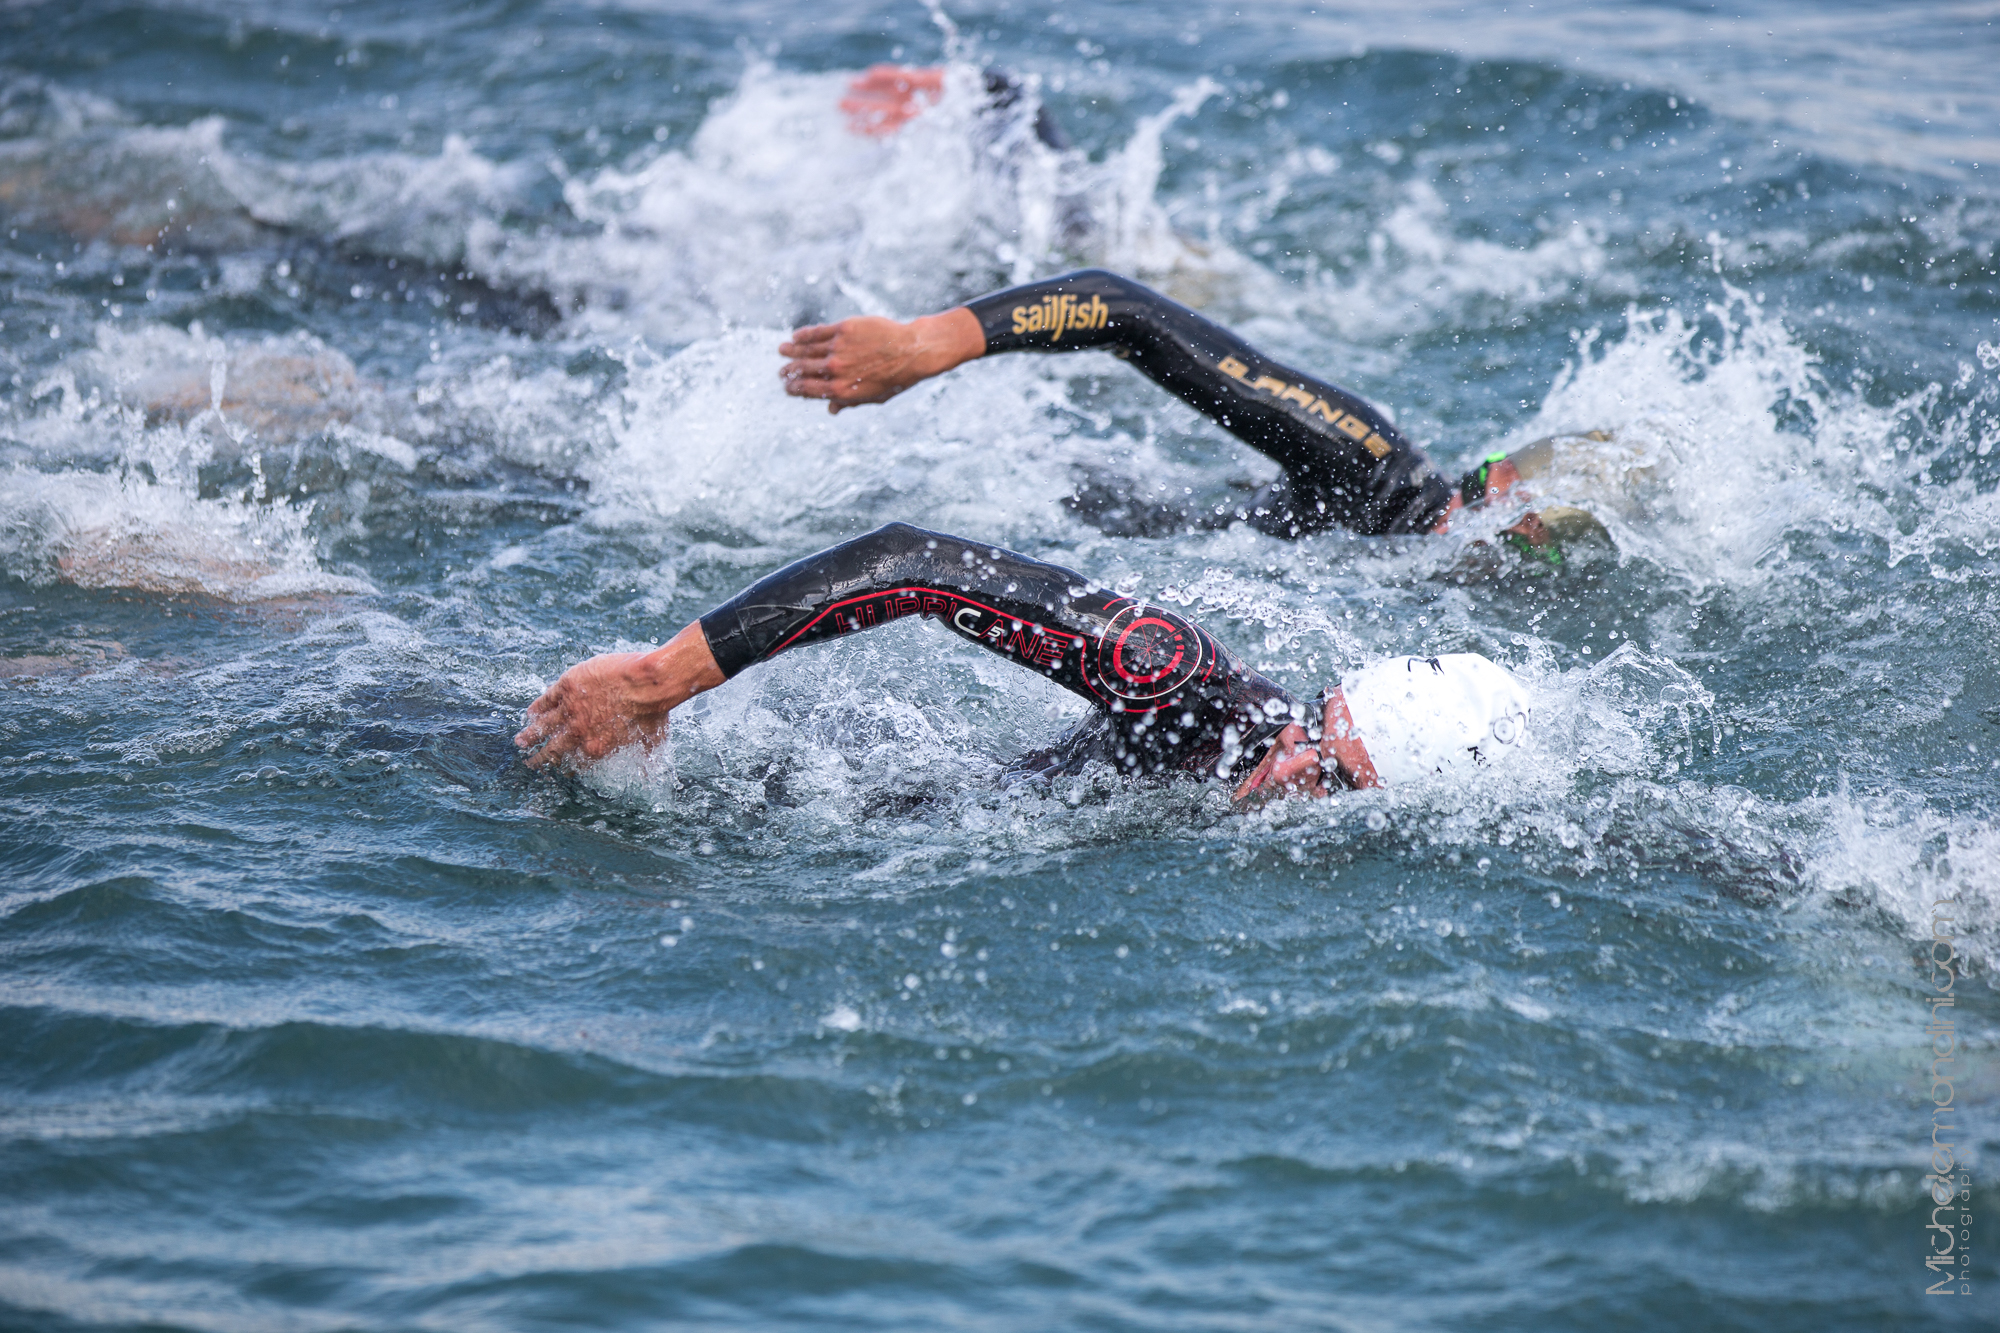 Olympic Triathlon Peschiera - Ph: Michele Mondini